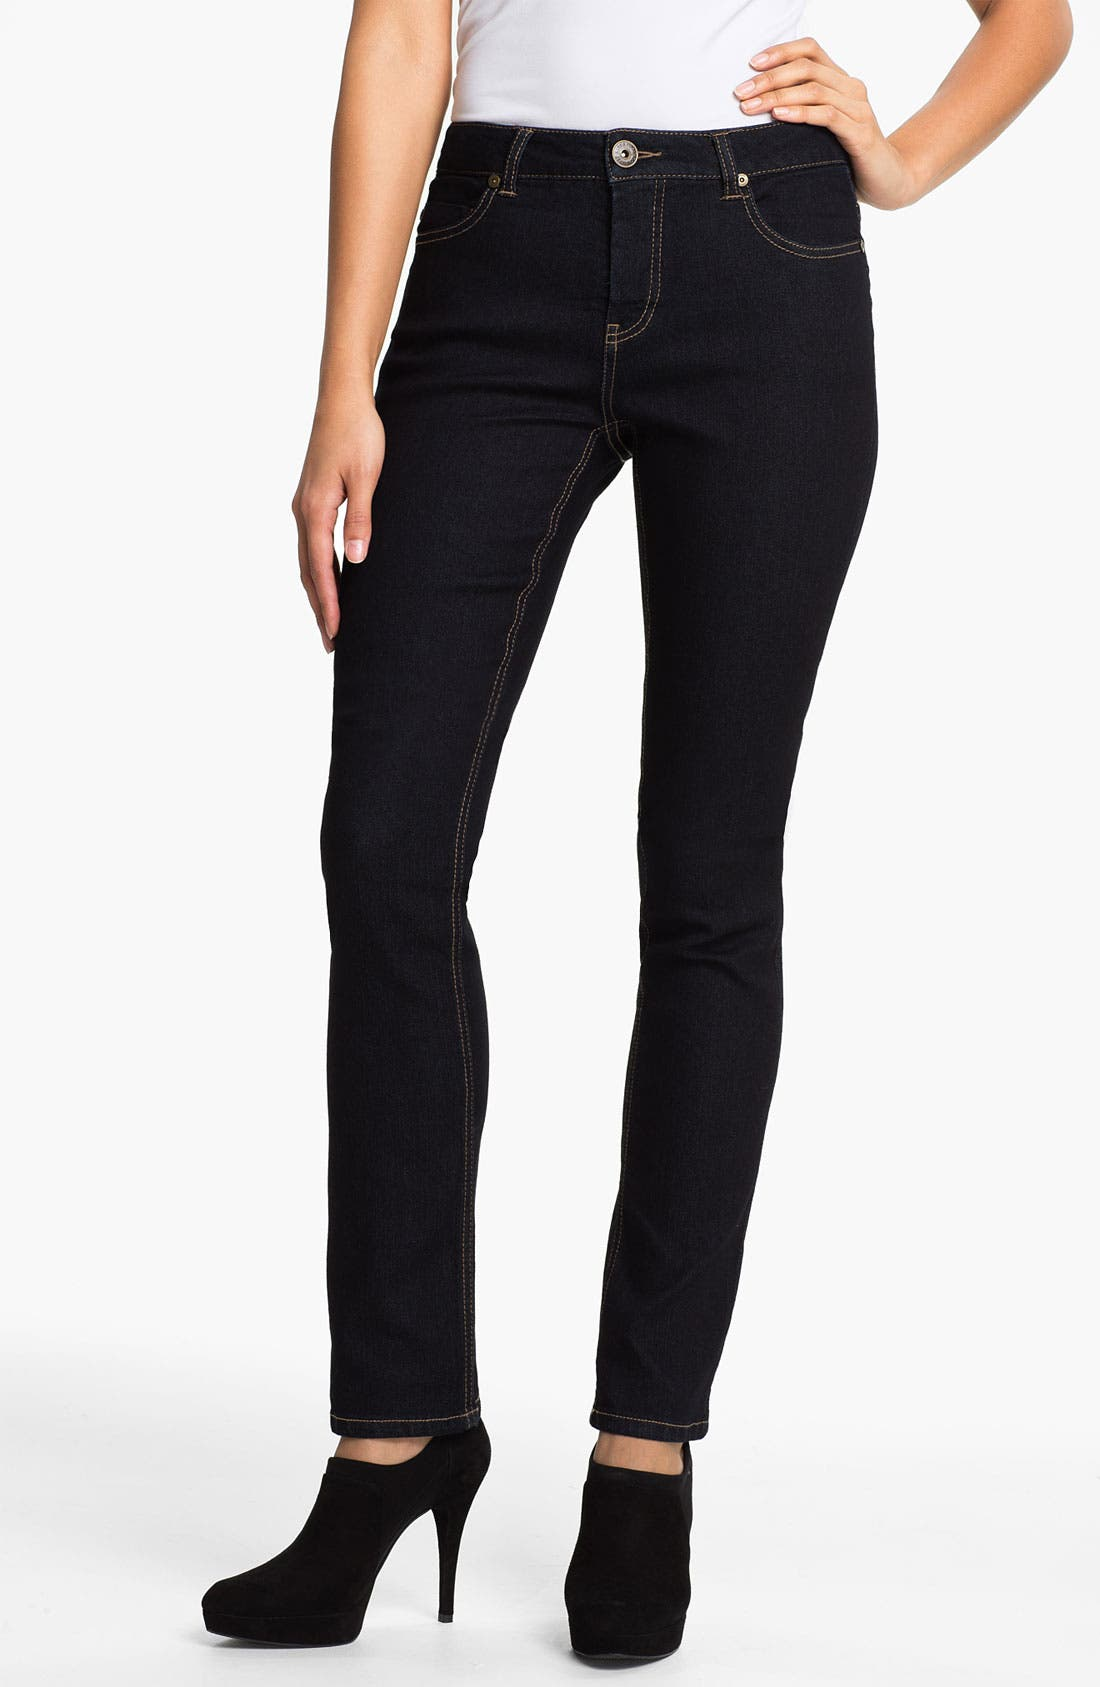 Main Image - Liverpool Jeans Company 'Sadie' Straight Leg Supersoft Stretch Jeans